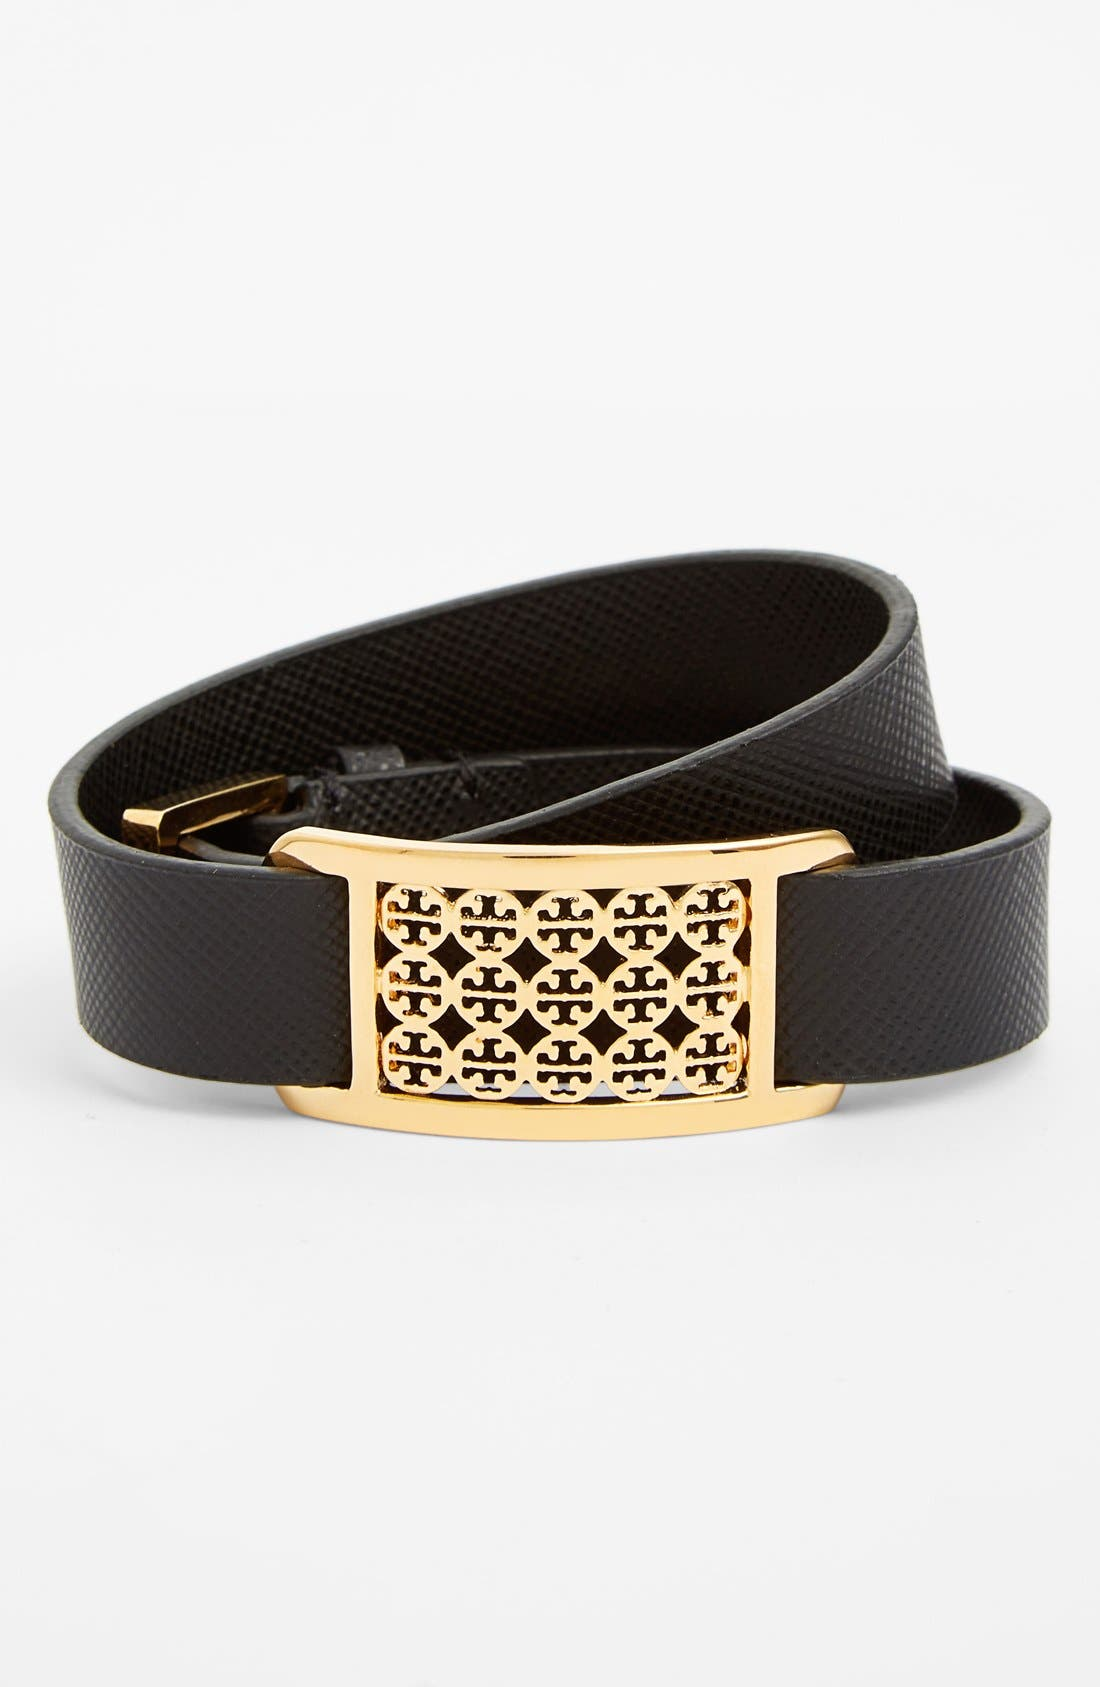 Alternate Image 1 Selected - Tory Burch 'Kinsley' Logo Plaque Leather Wrap Bracelet